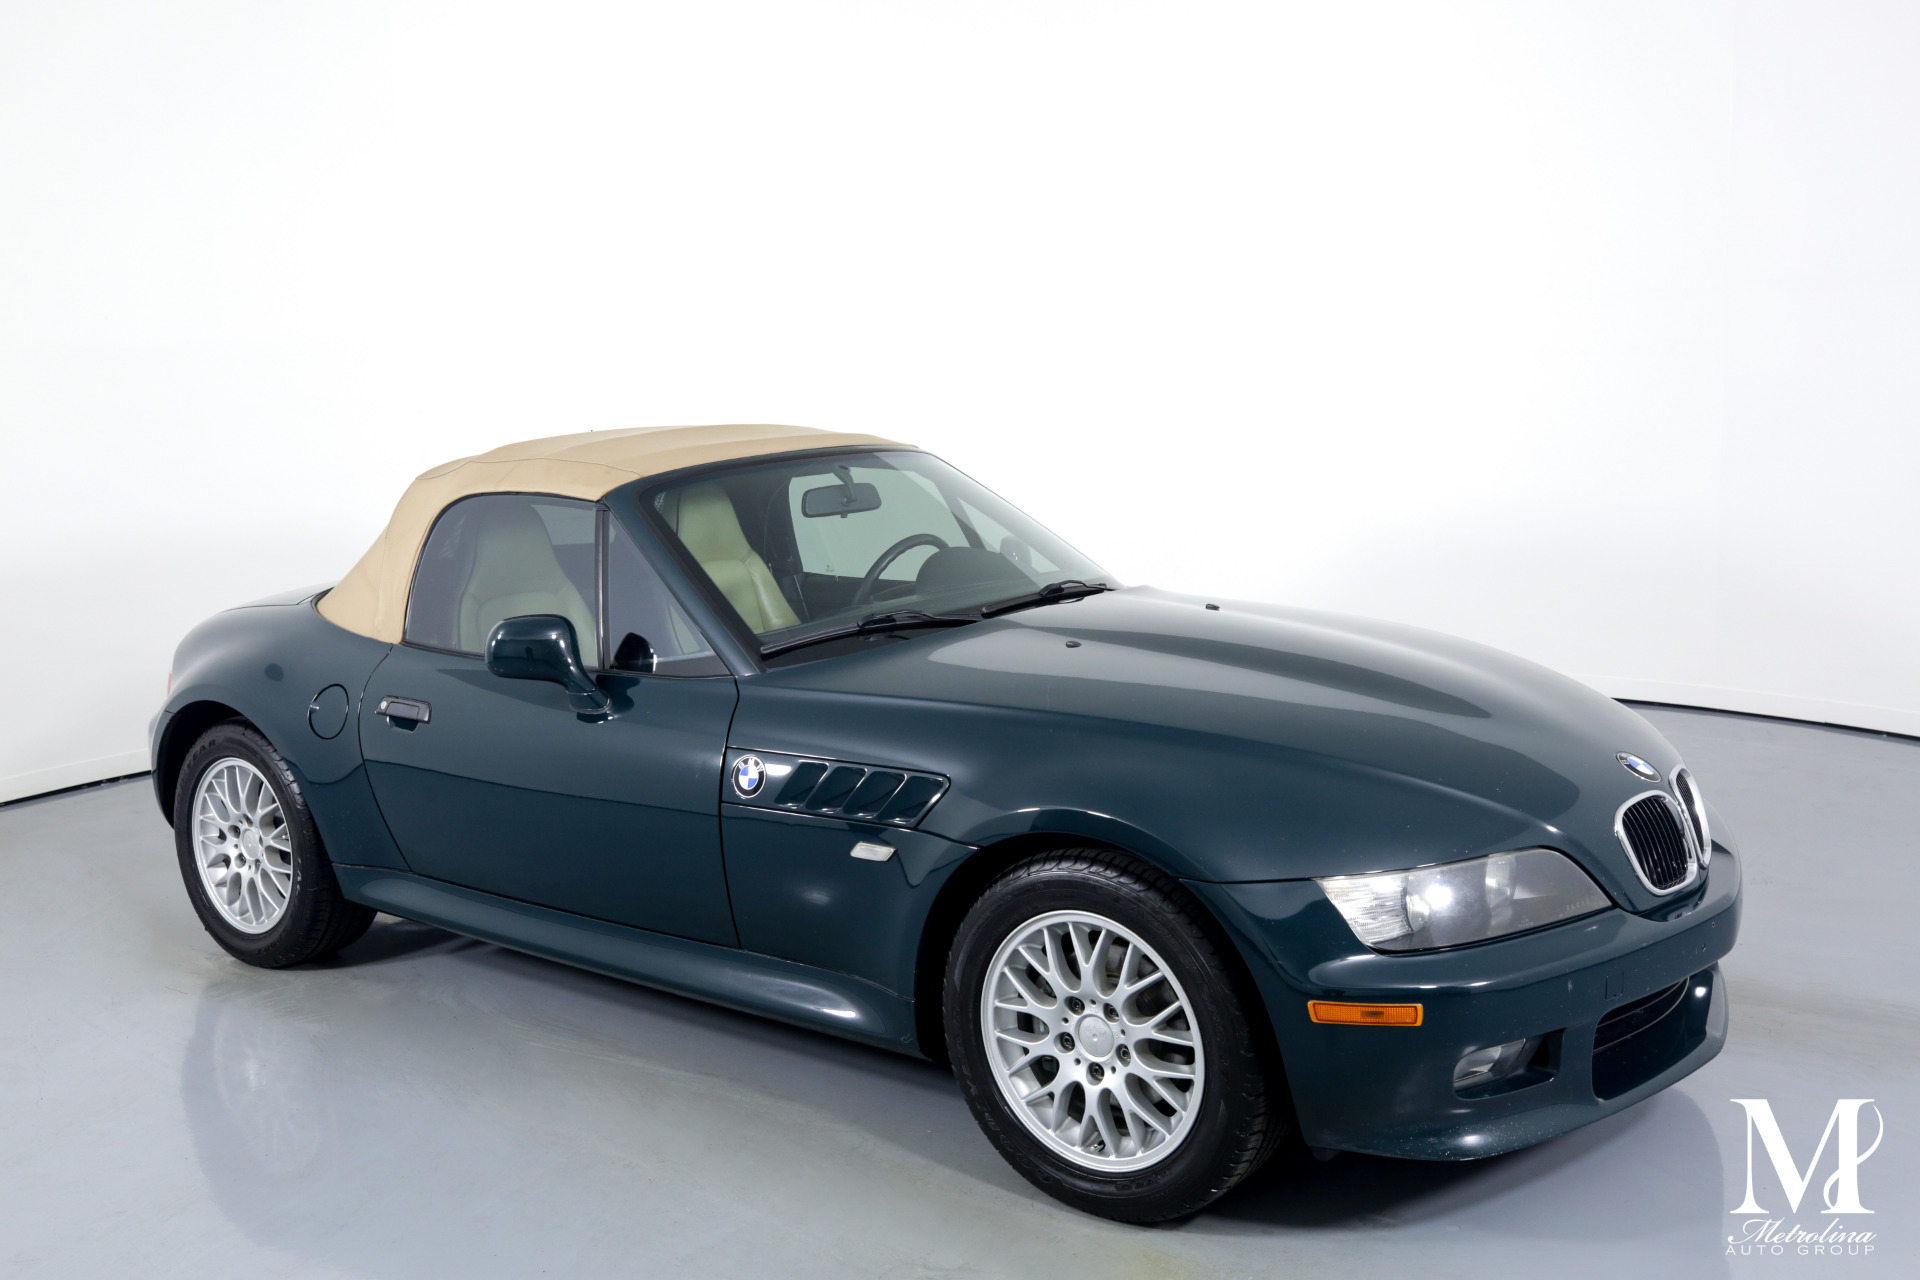 Used 1999 BMW Z3 2.8 for sale $14,996 at Metrolina Auto Group in Charlotte NC 28217 - 2